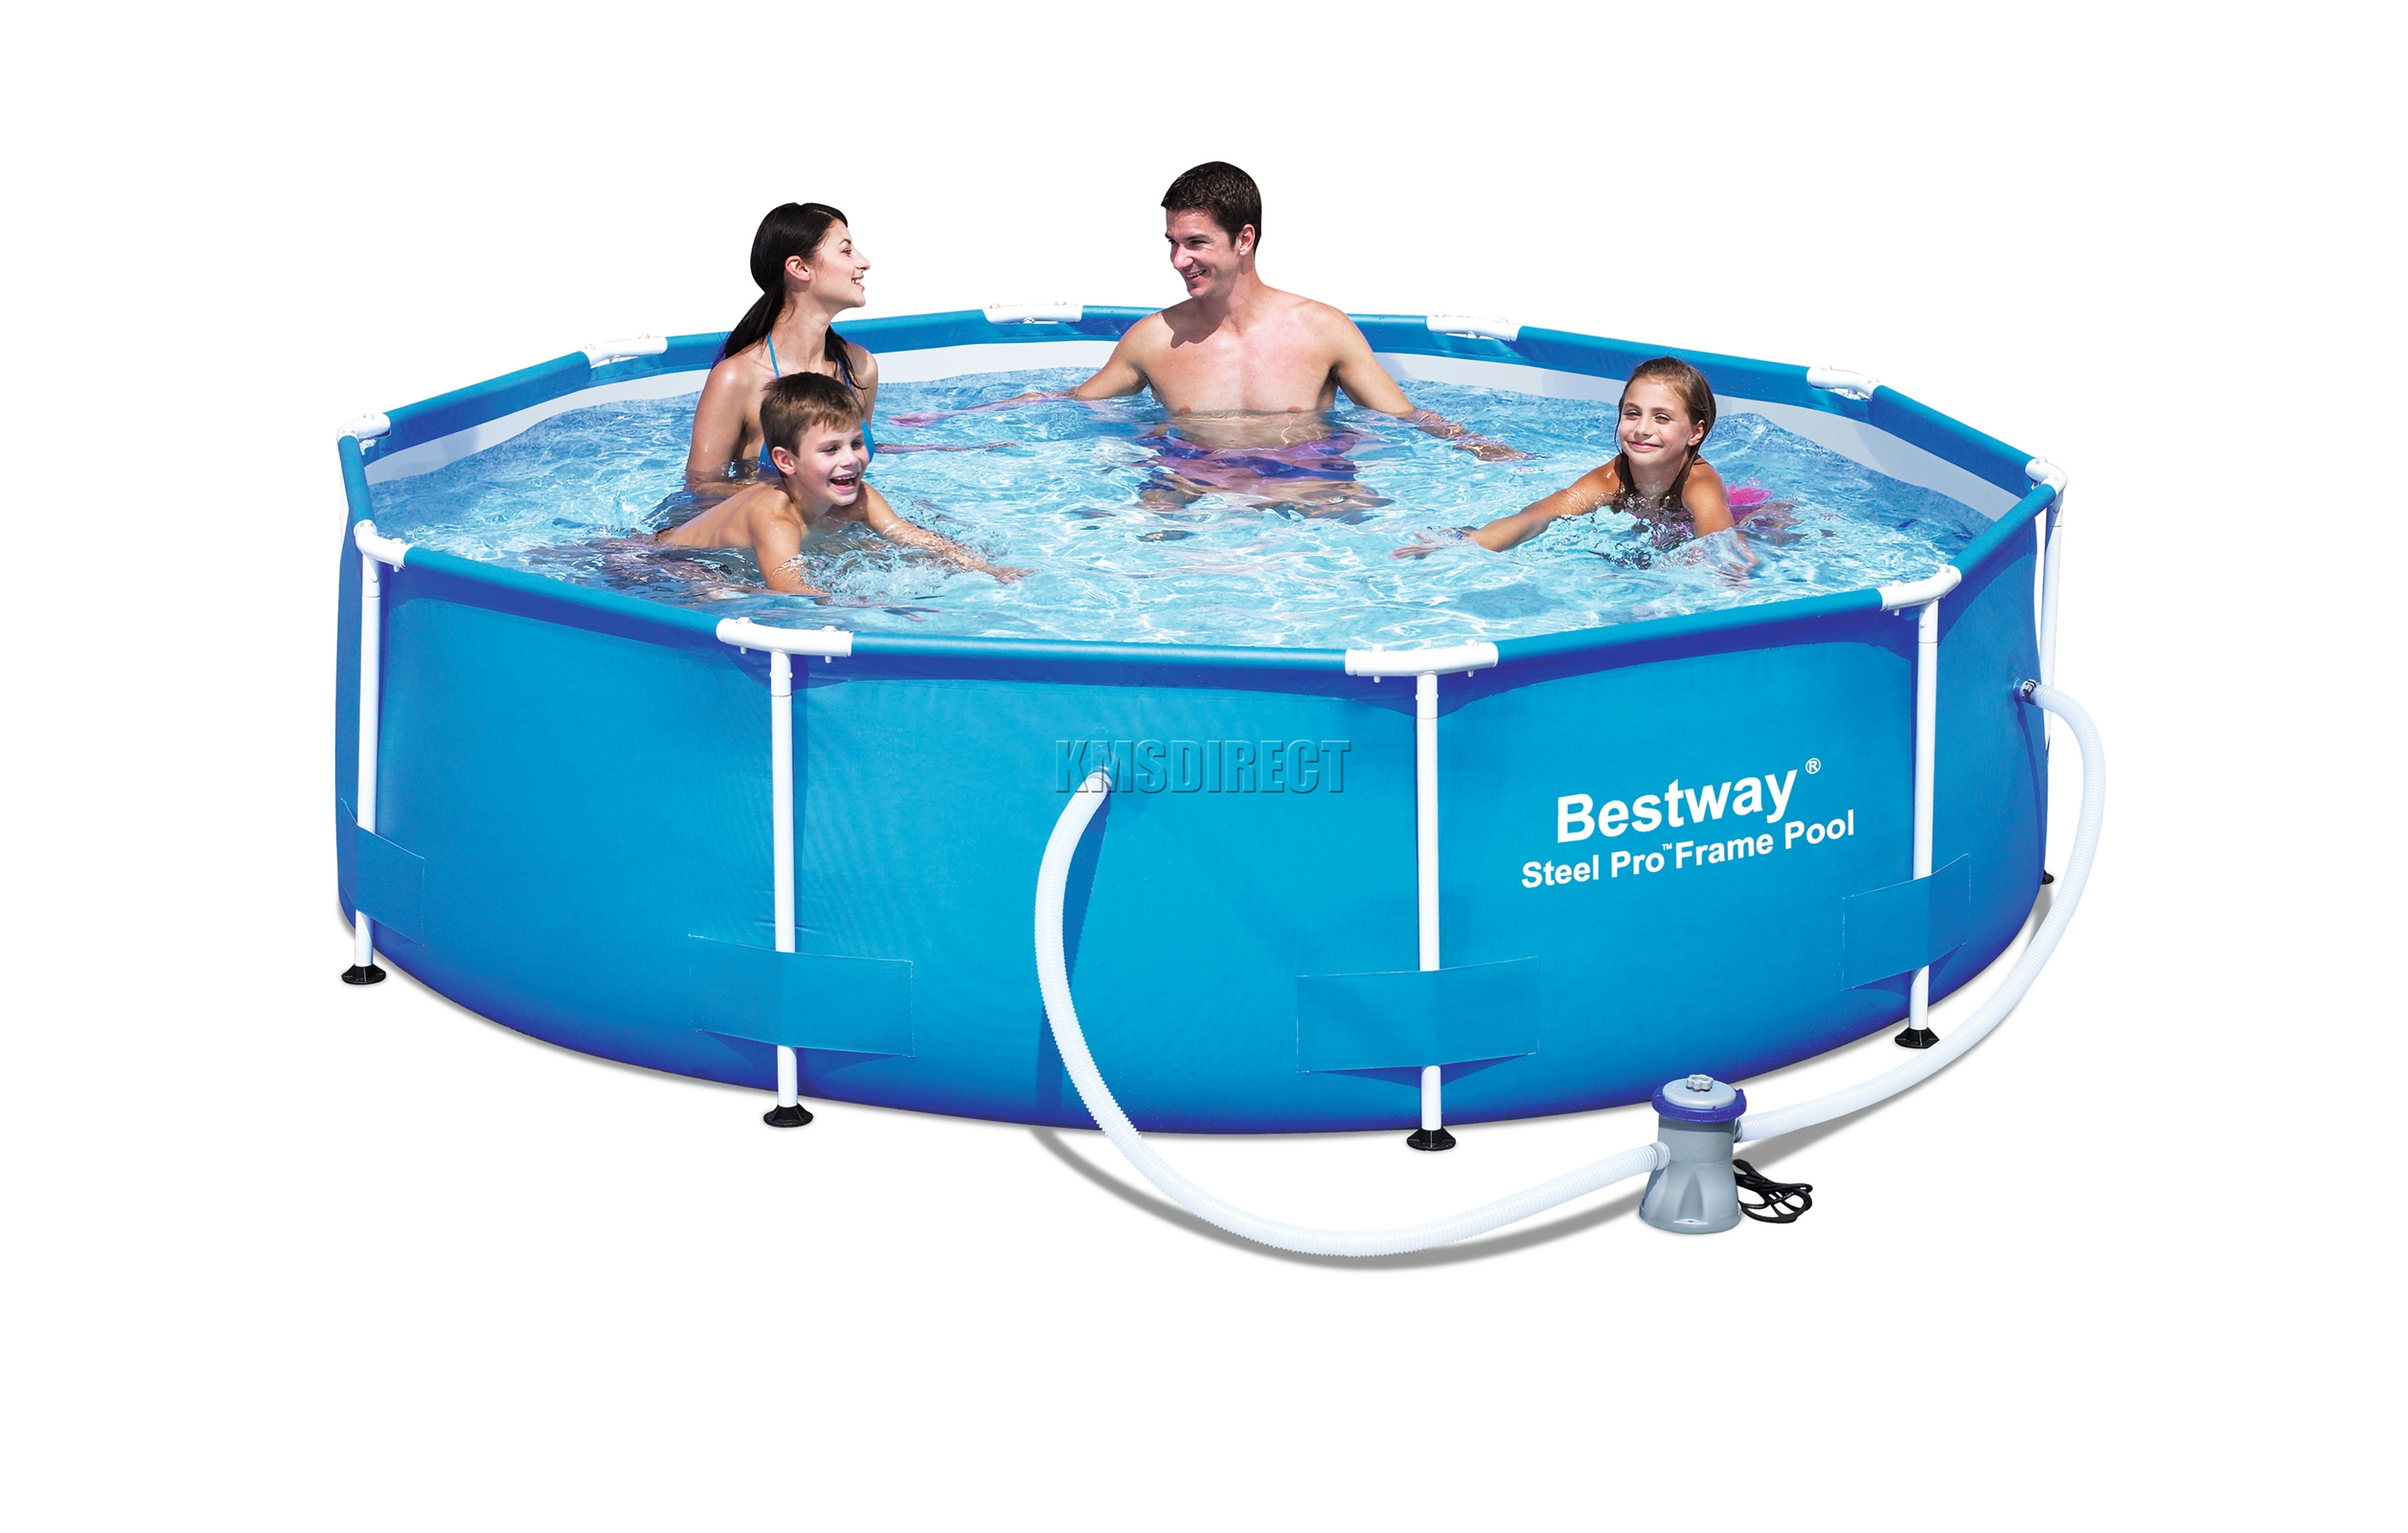 bestway steel pro frame swimming pool set round above ground 10ft x 30inch new ebay. Black Bedroom Furniture Sets. Home Design Ideas